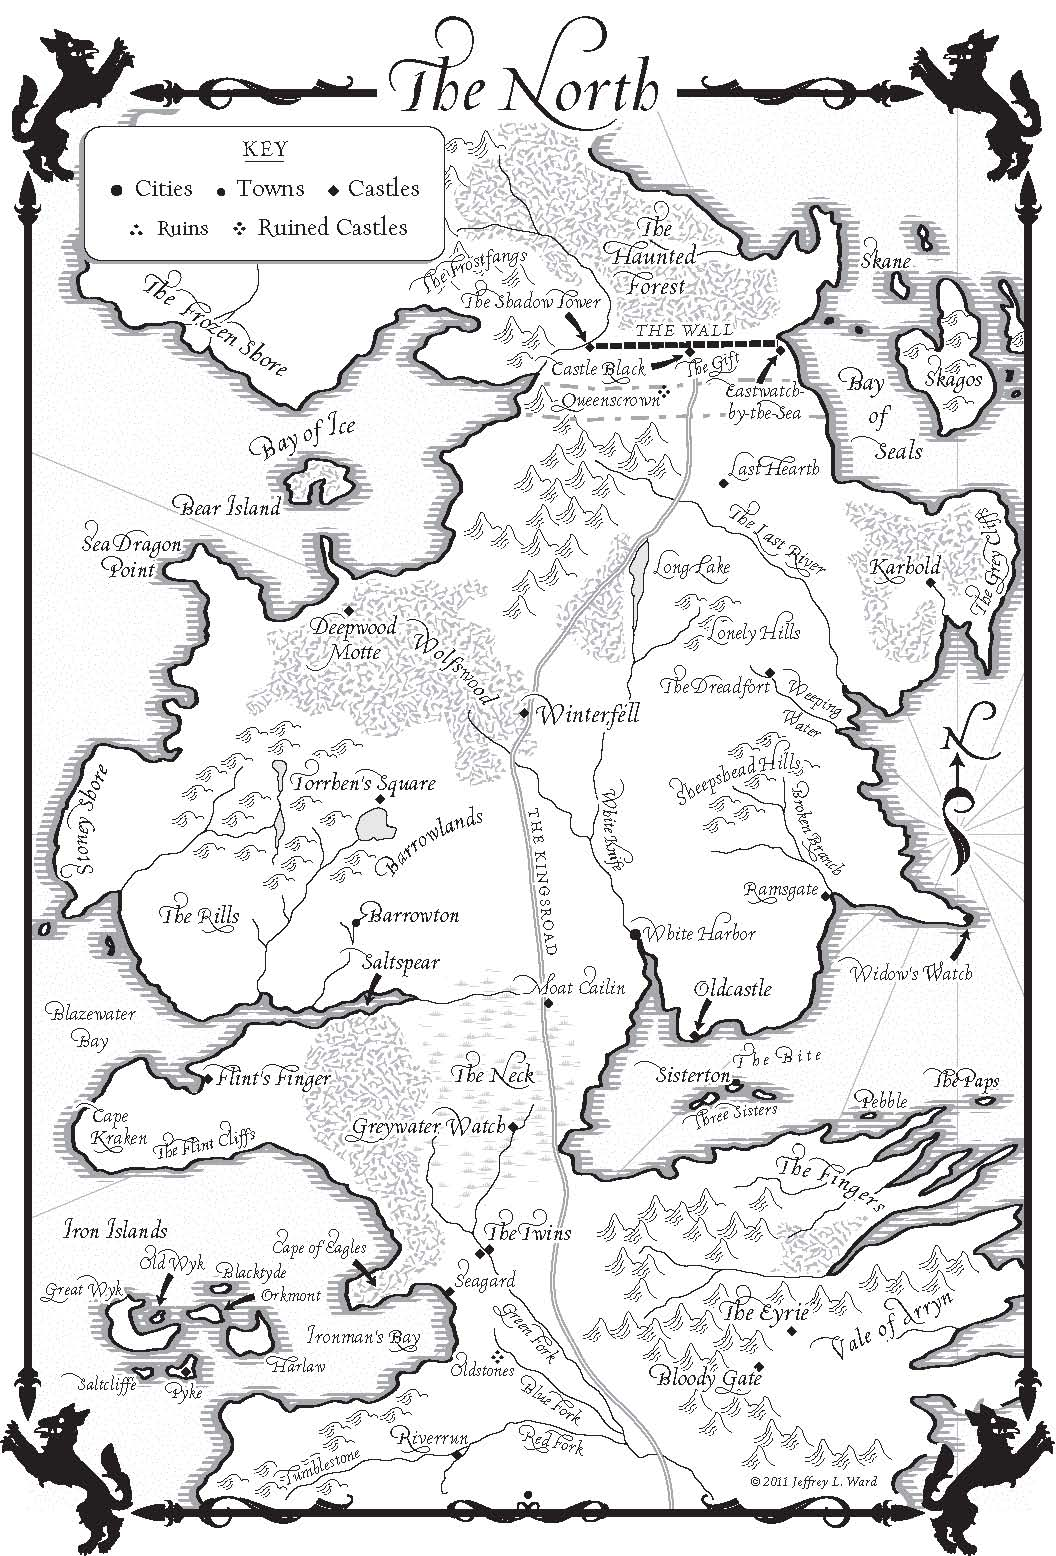 photograph about Game of Thrones Printable Map known as A Activity of Thrones Maps - Random Home Guides